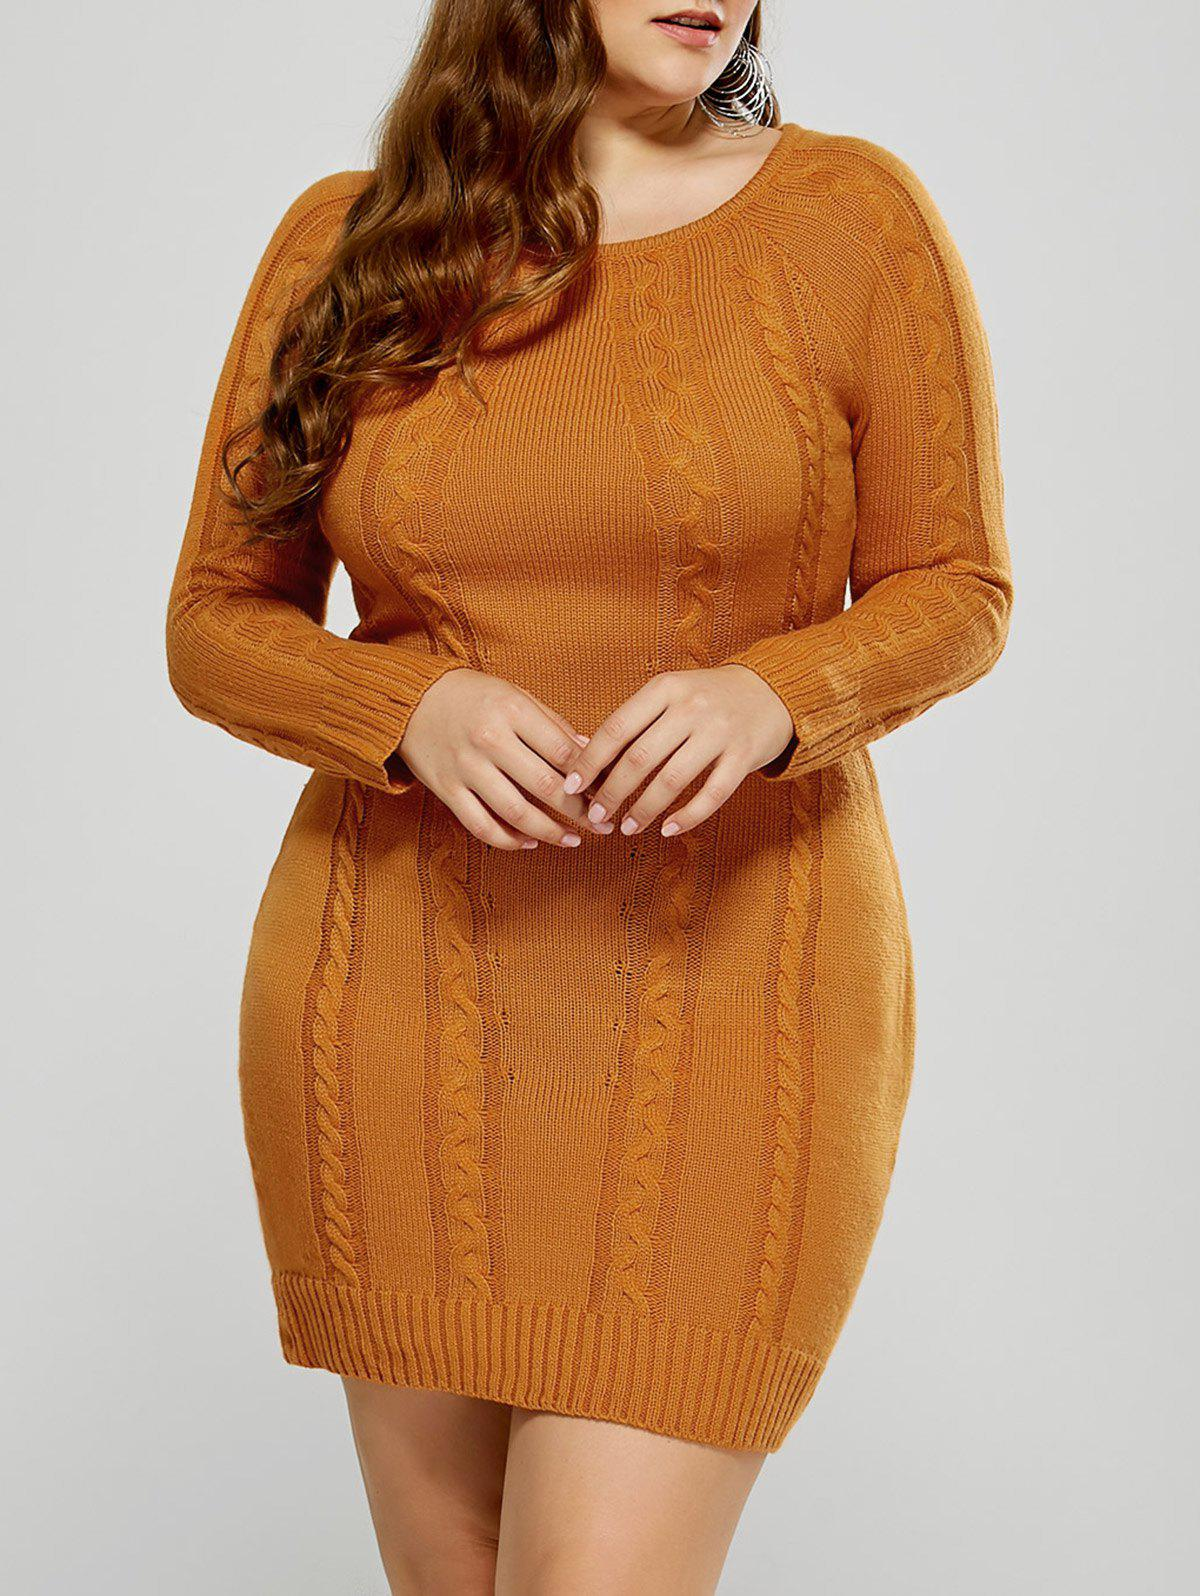 Mini-robe  chandail Knit câble graende taill - Mandarin 3XL